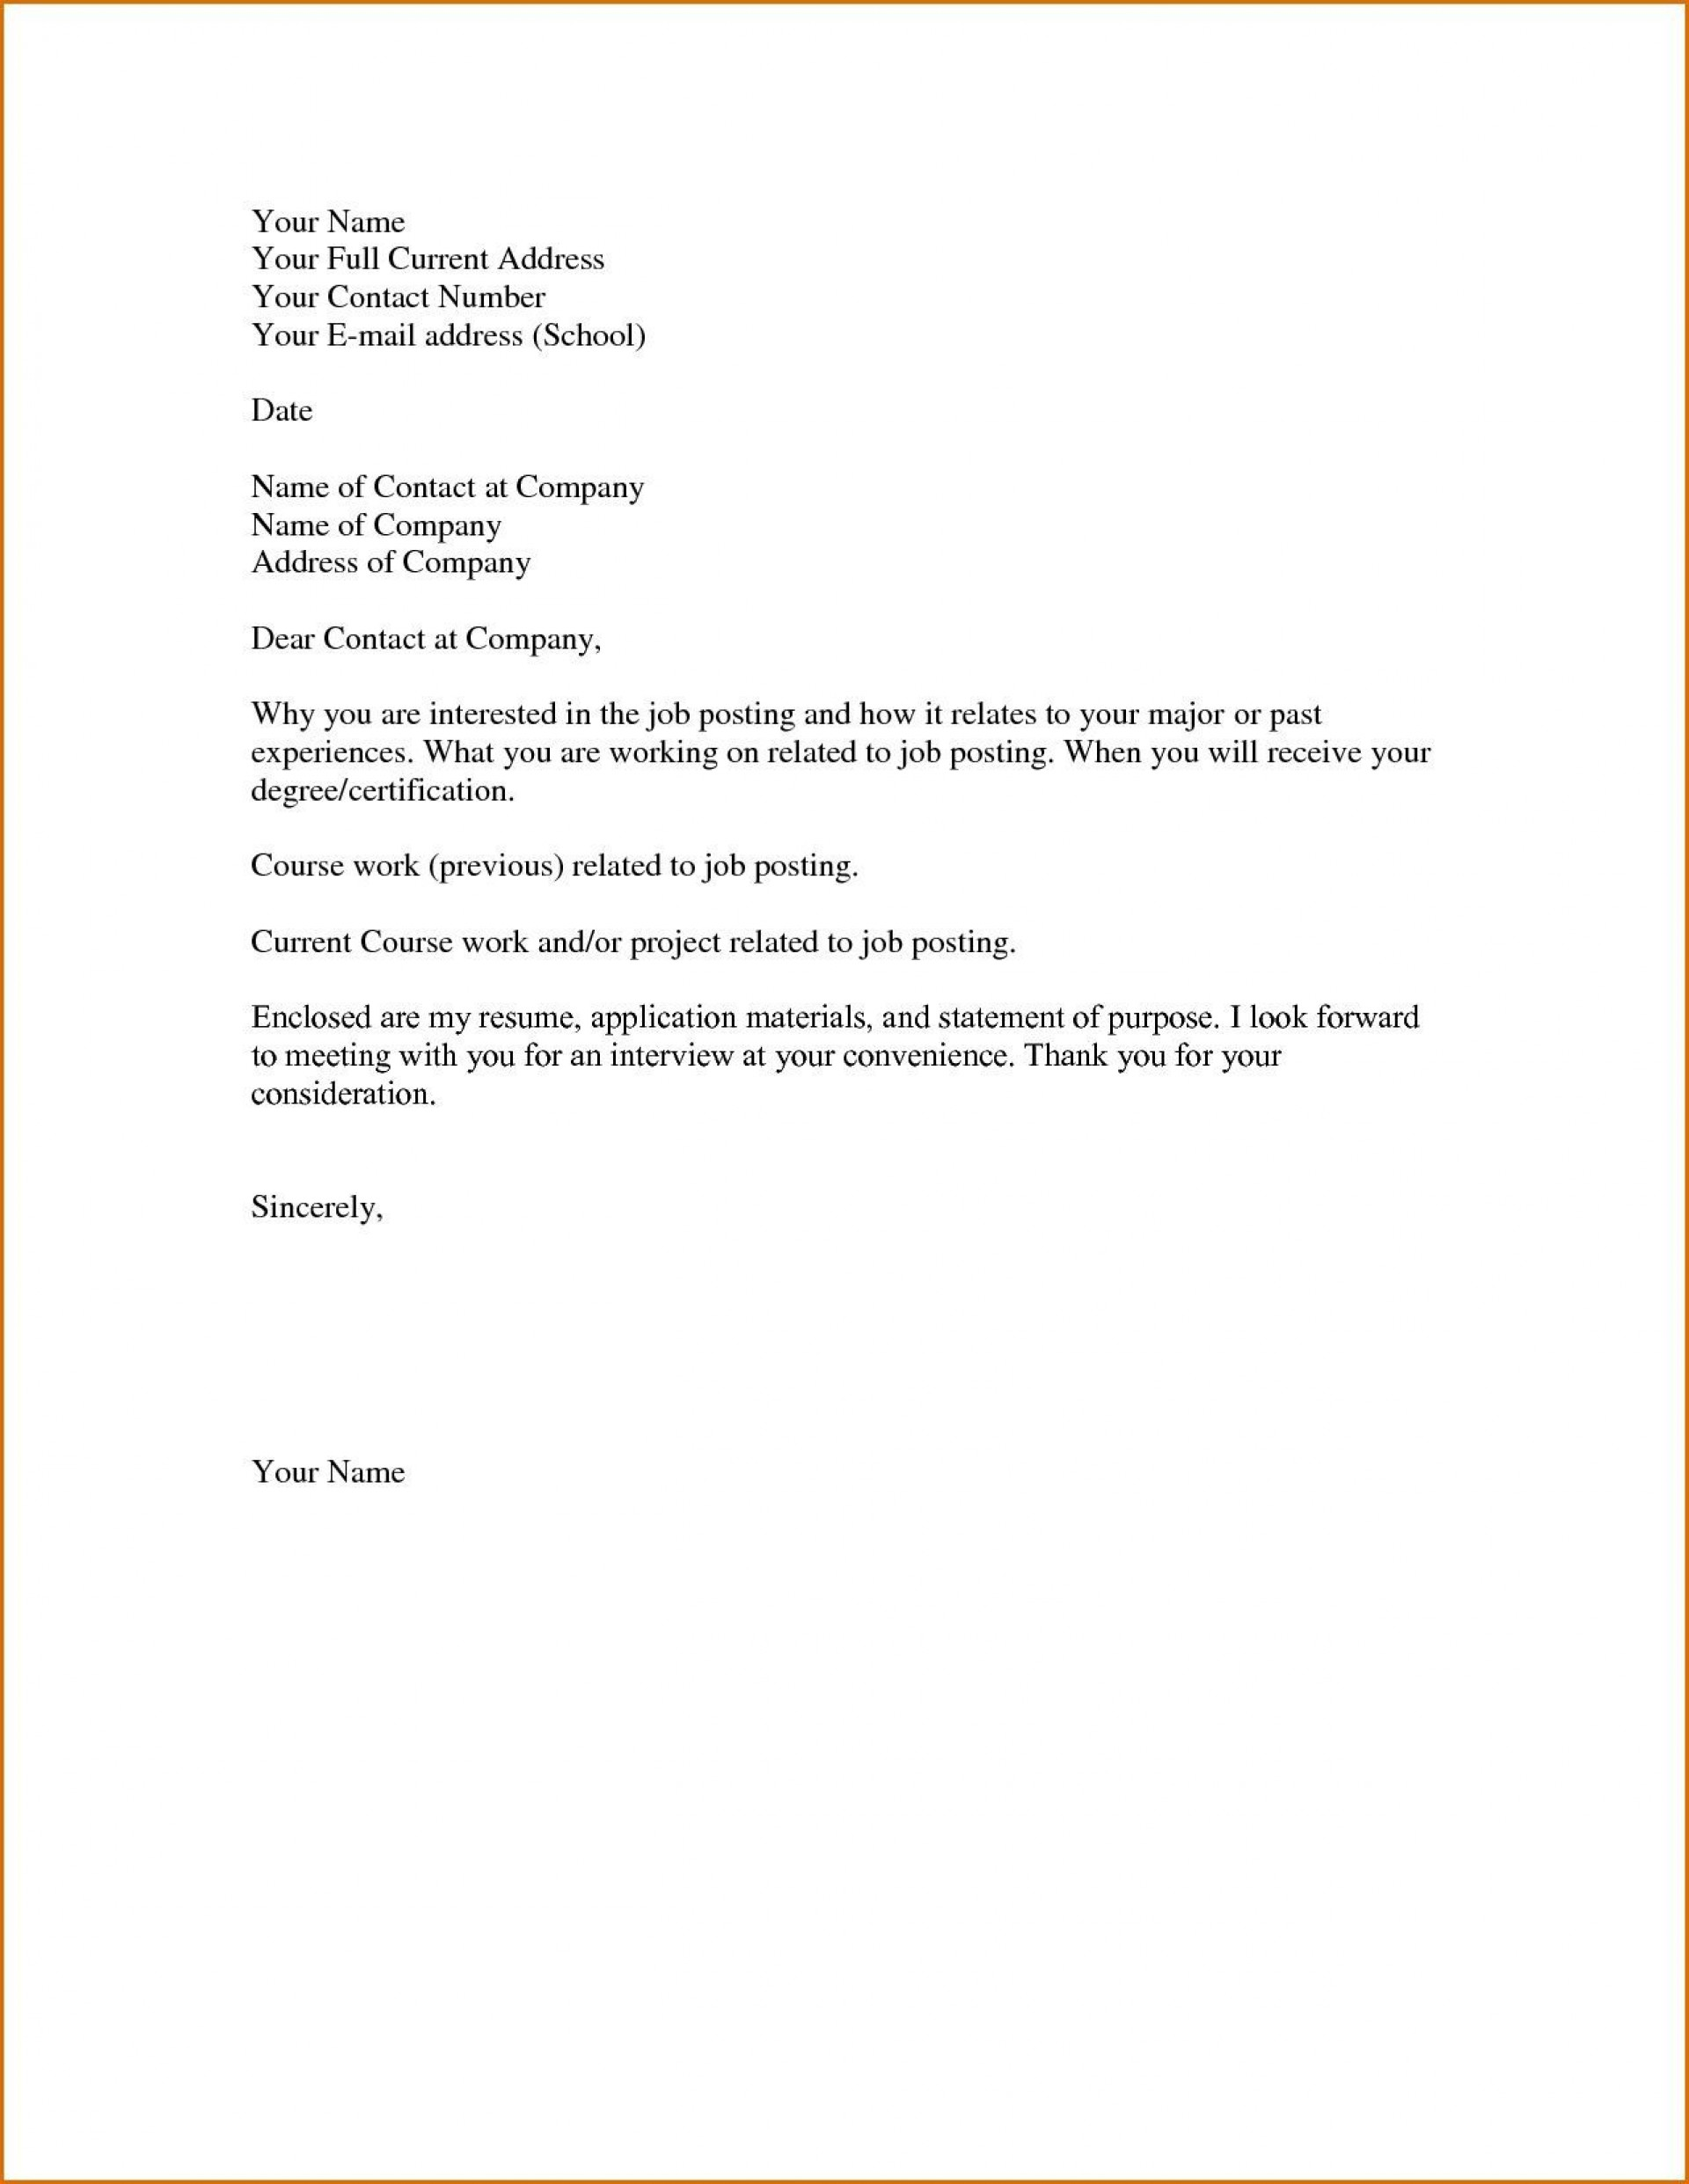 003 Stunning Basic Covering Letter Template Picture  Simple Application Job Sample Cover1920